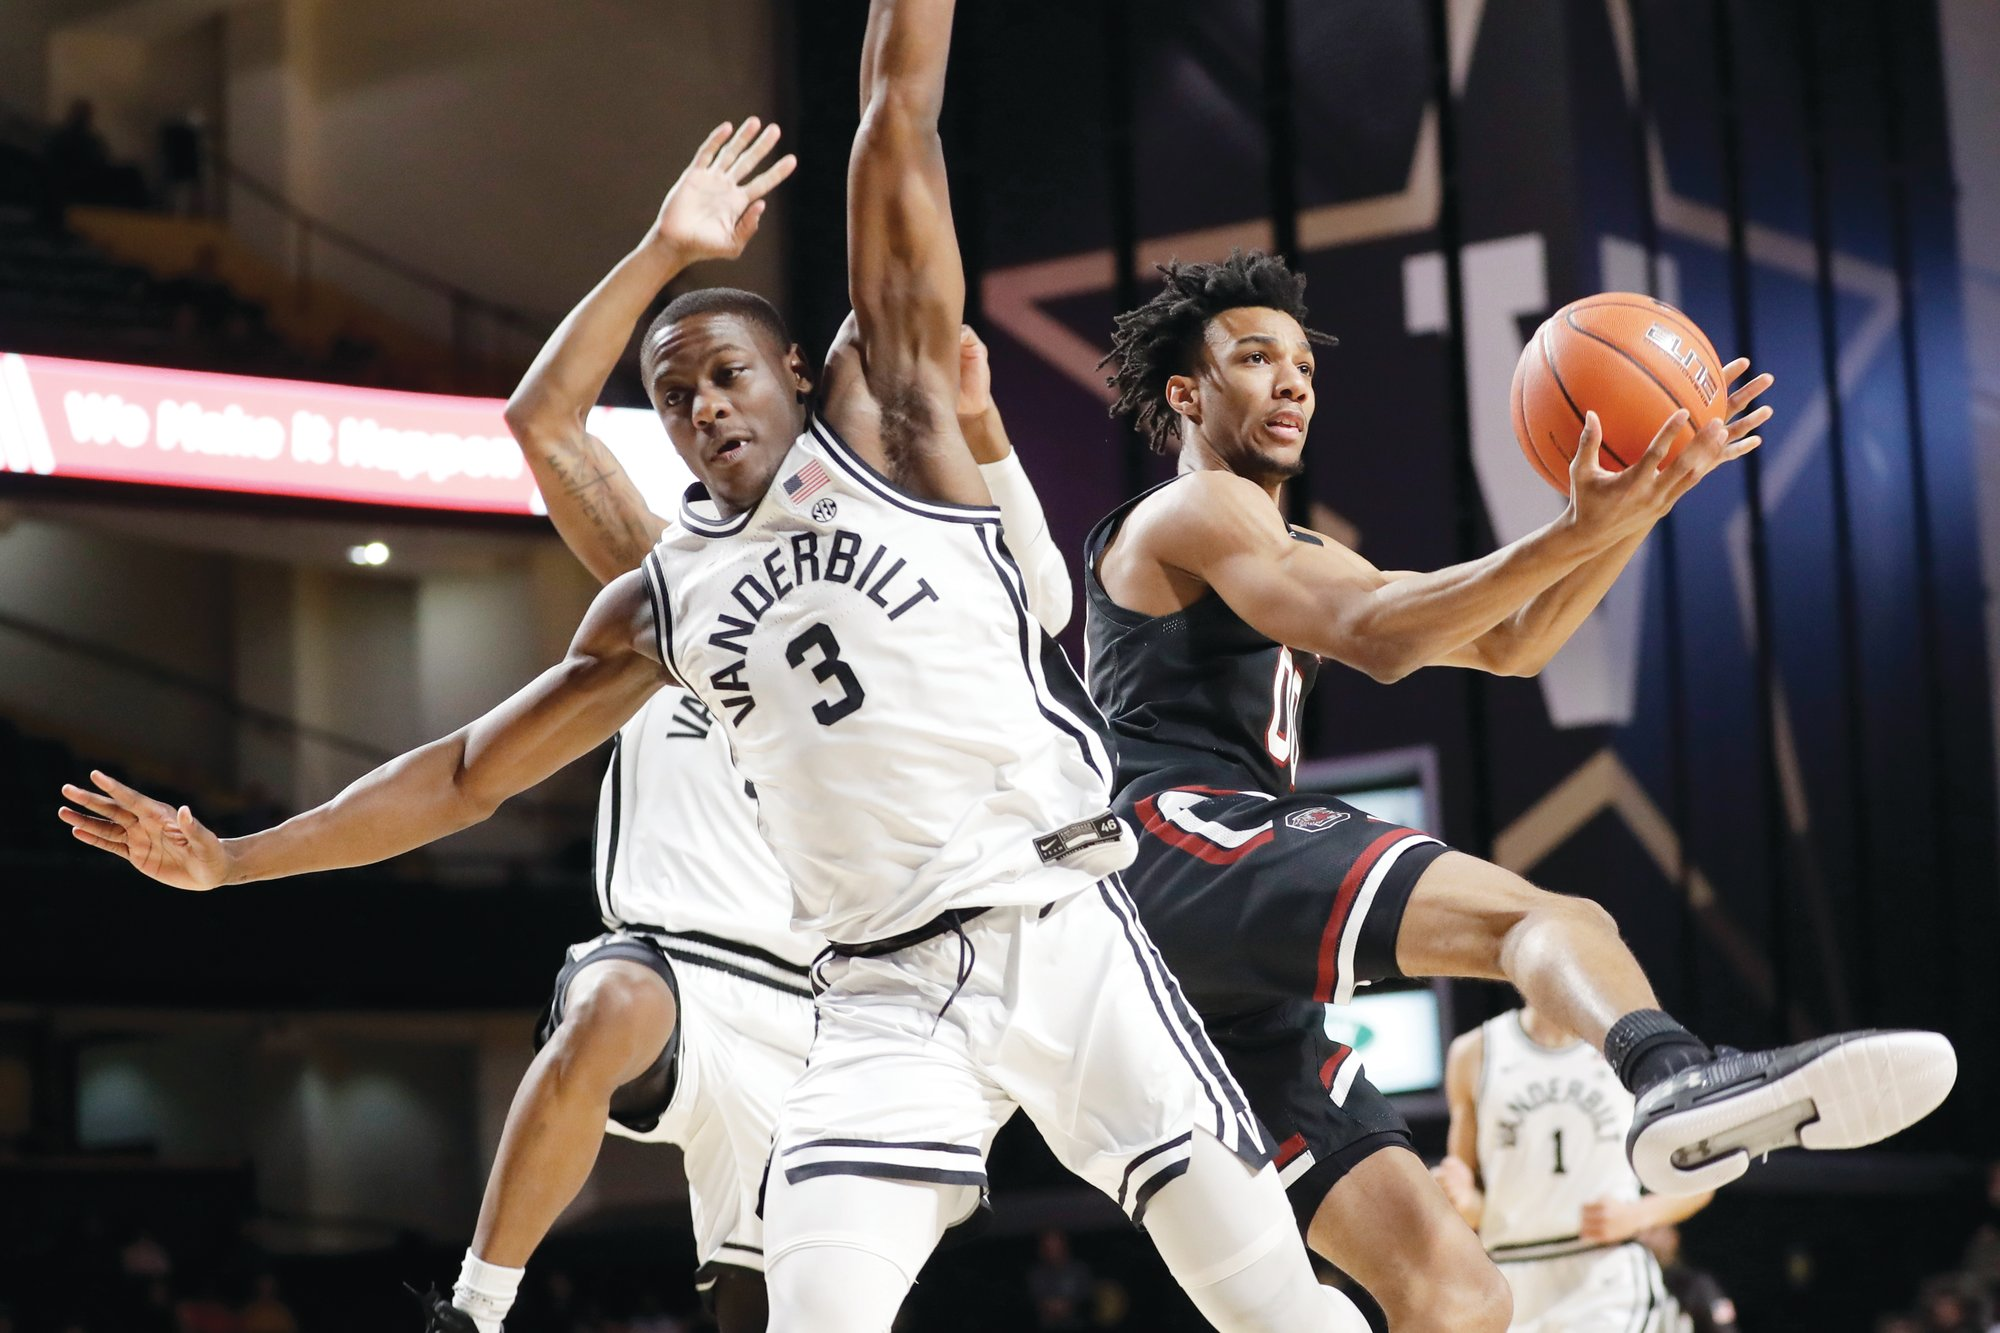 South Carolina's A.J. Lawson, right, will withdrew from the NBA draft and will return to the Gamecocks.